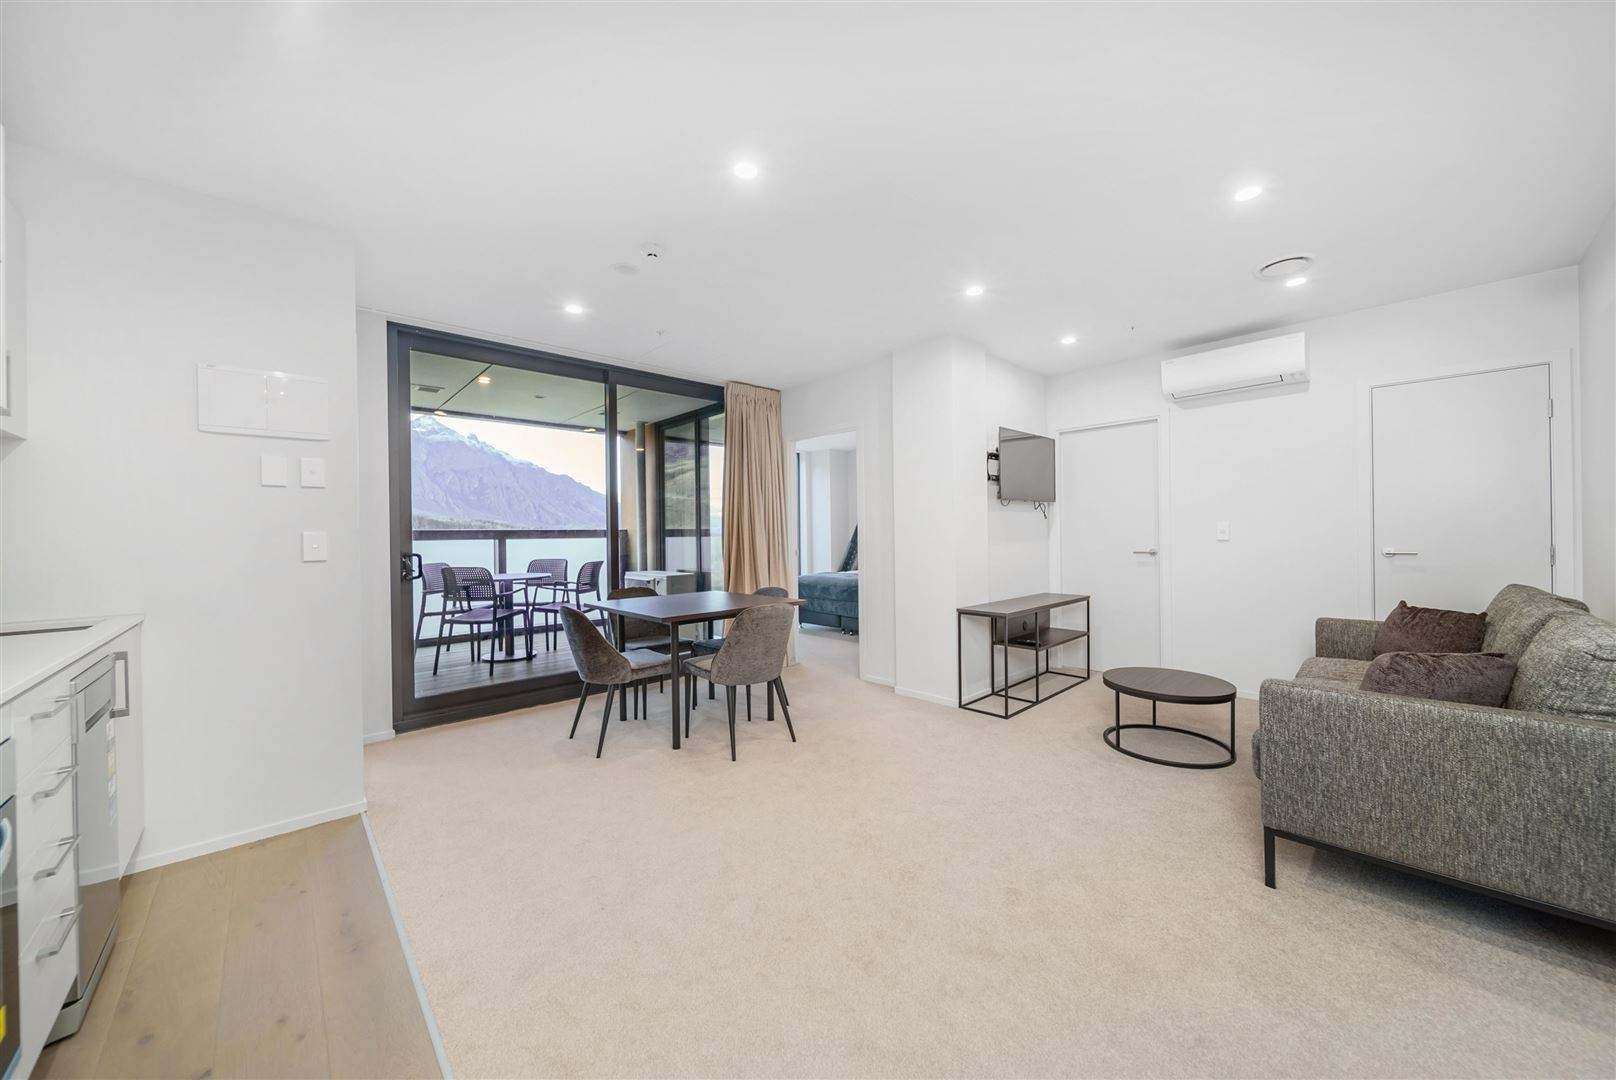 Frankton 2房 Remarkable Views & Remarkably Priced at $709,000!